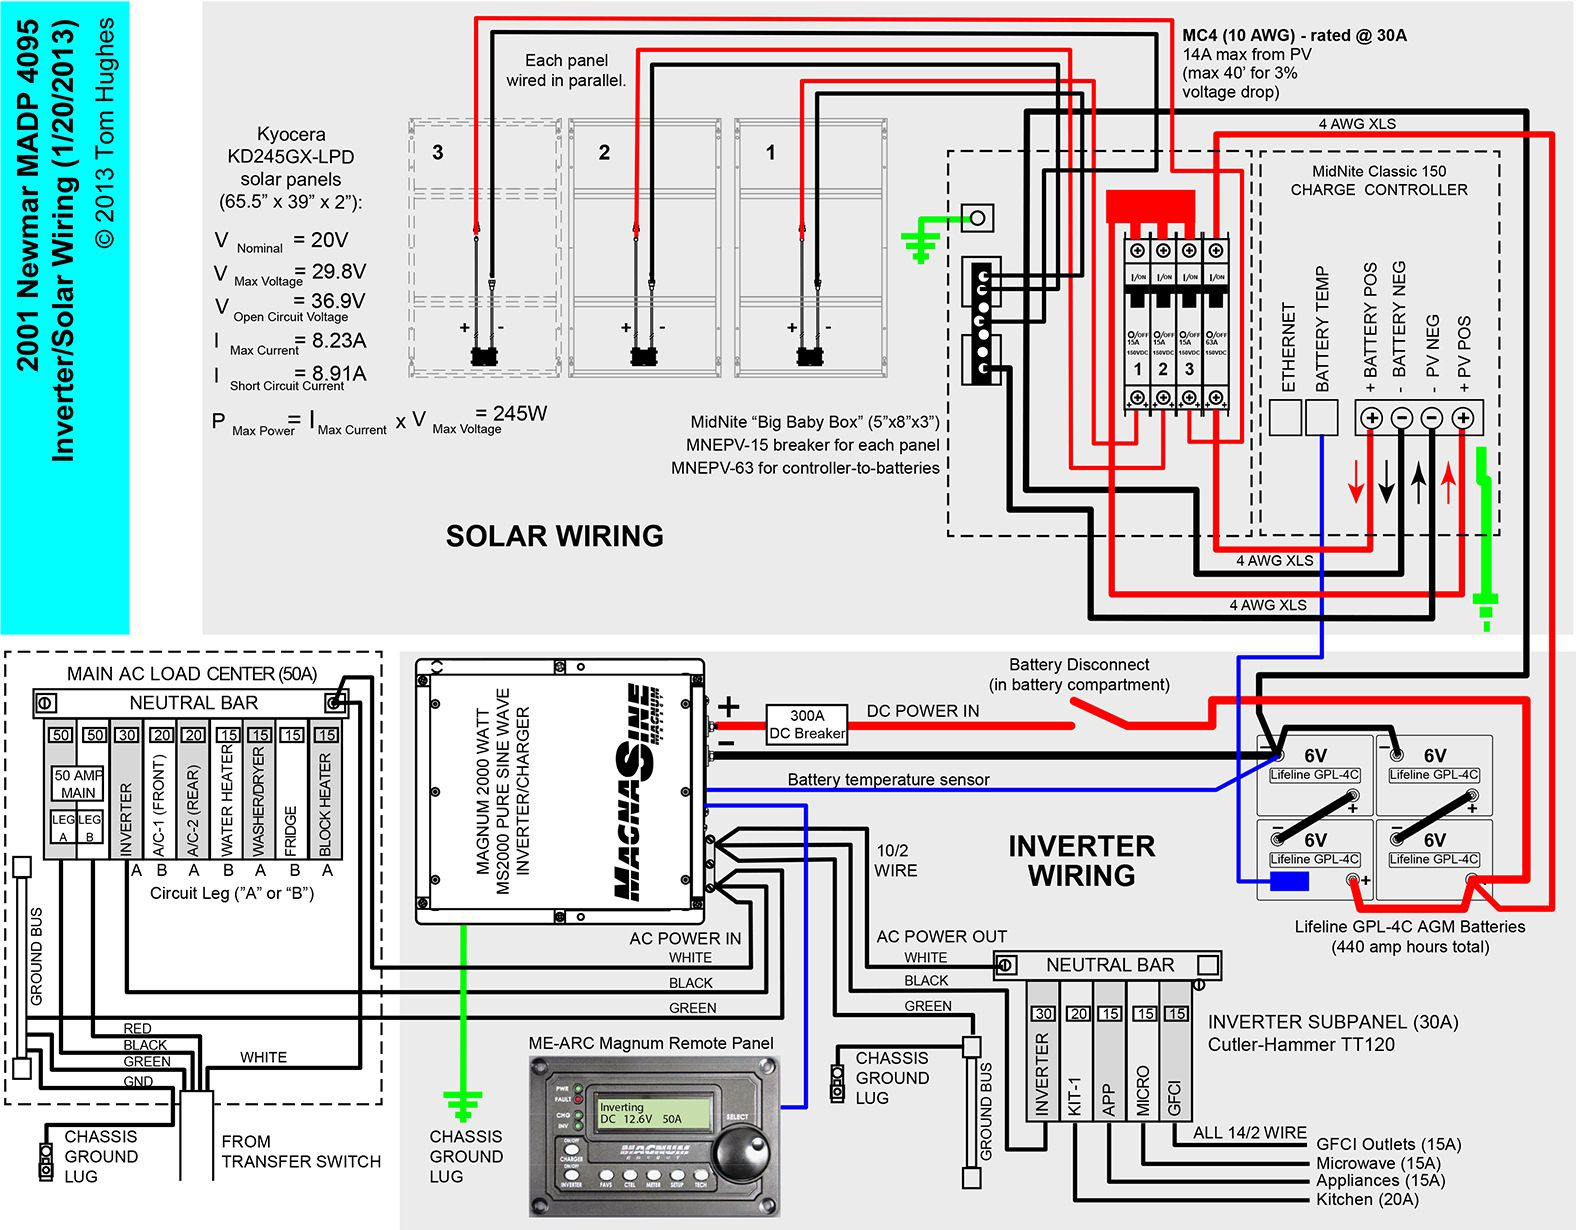 inverter schematic wiring diagram rv inverter wiring diagram | rv inverter wiring diagram ...